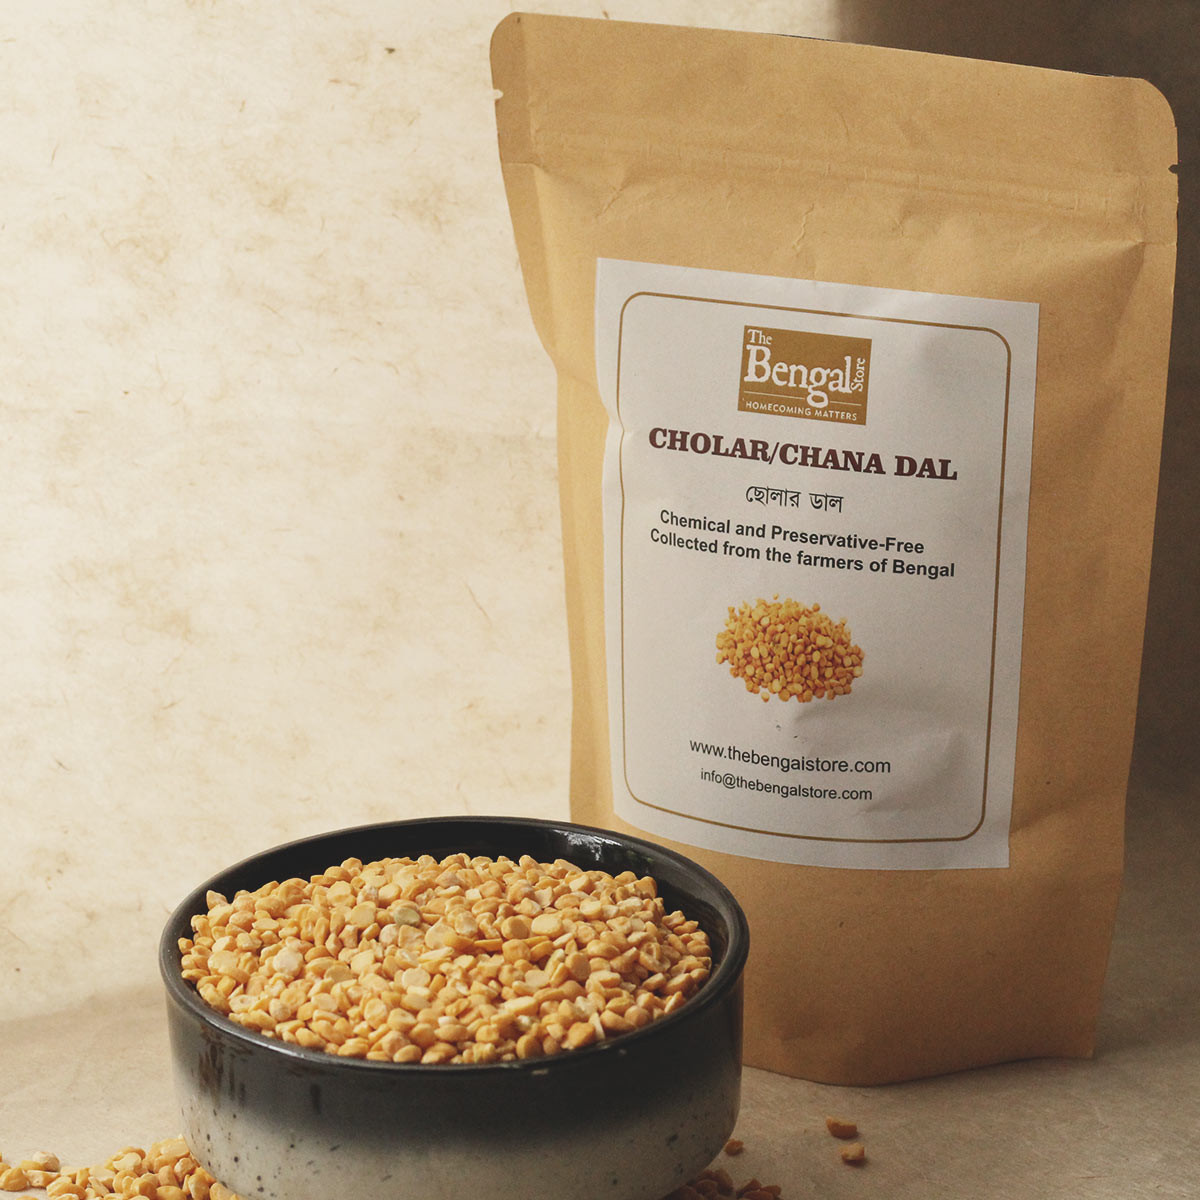 Chola Dal / Chana Dal (500g)- Chemical and Preservative-free